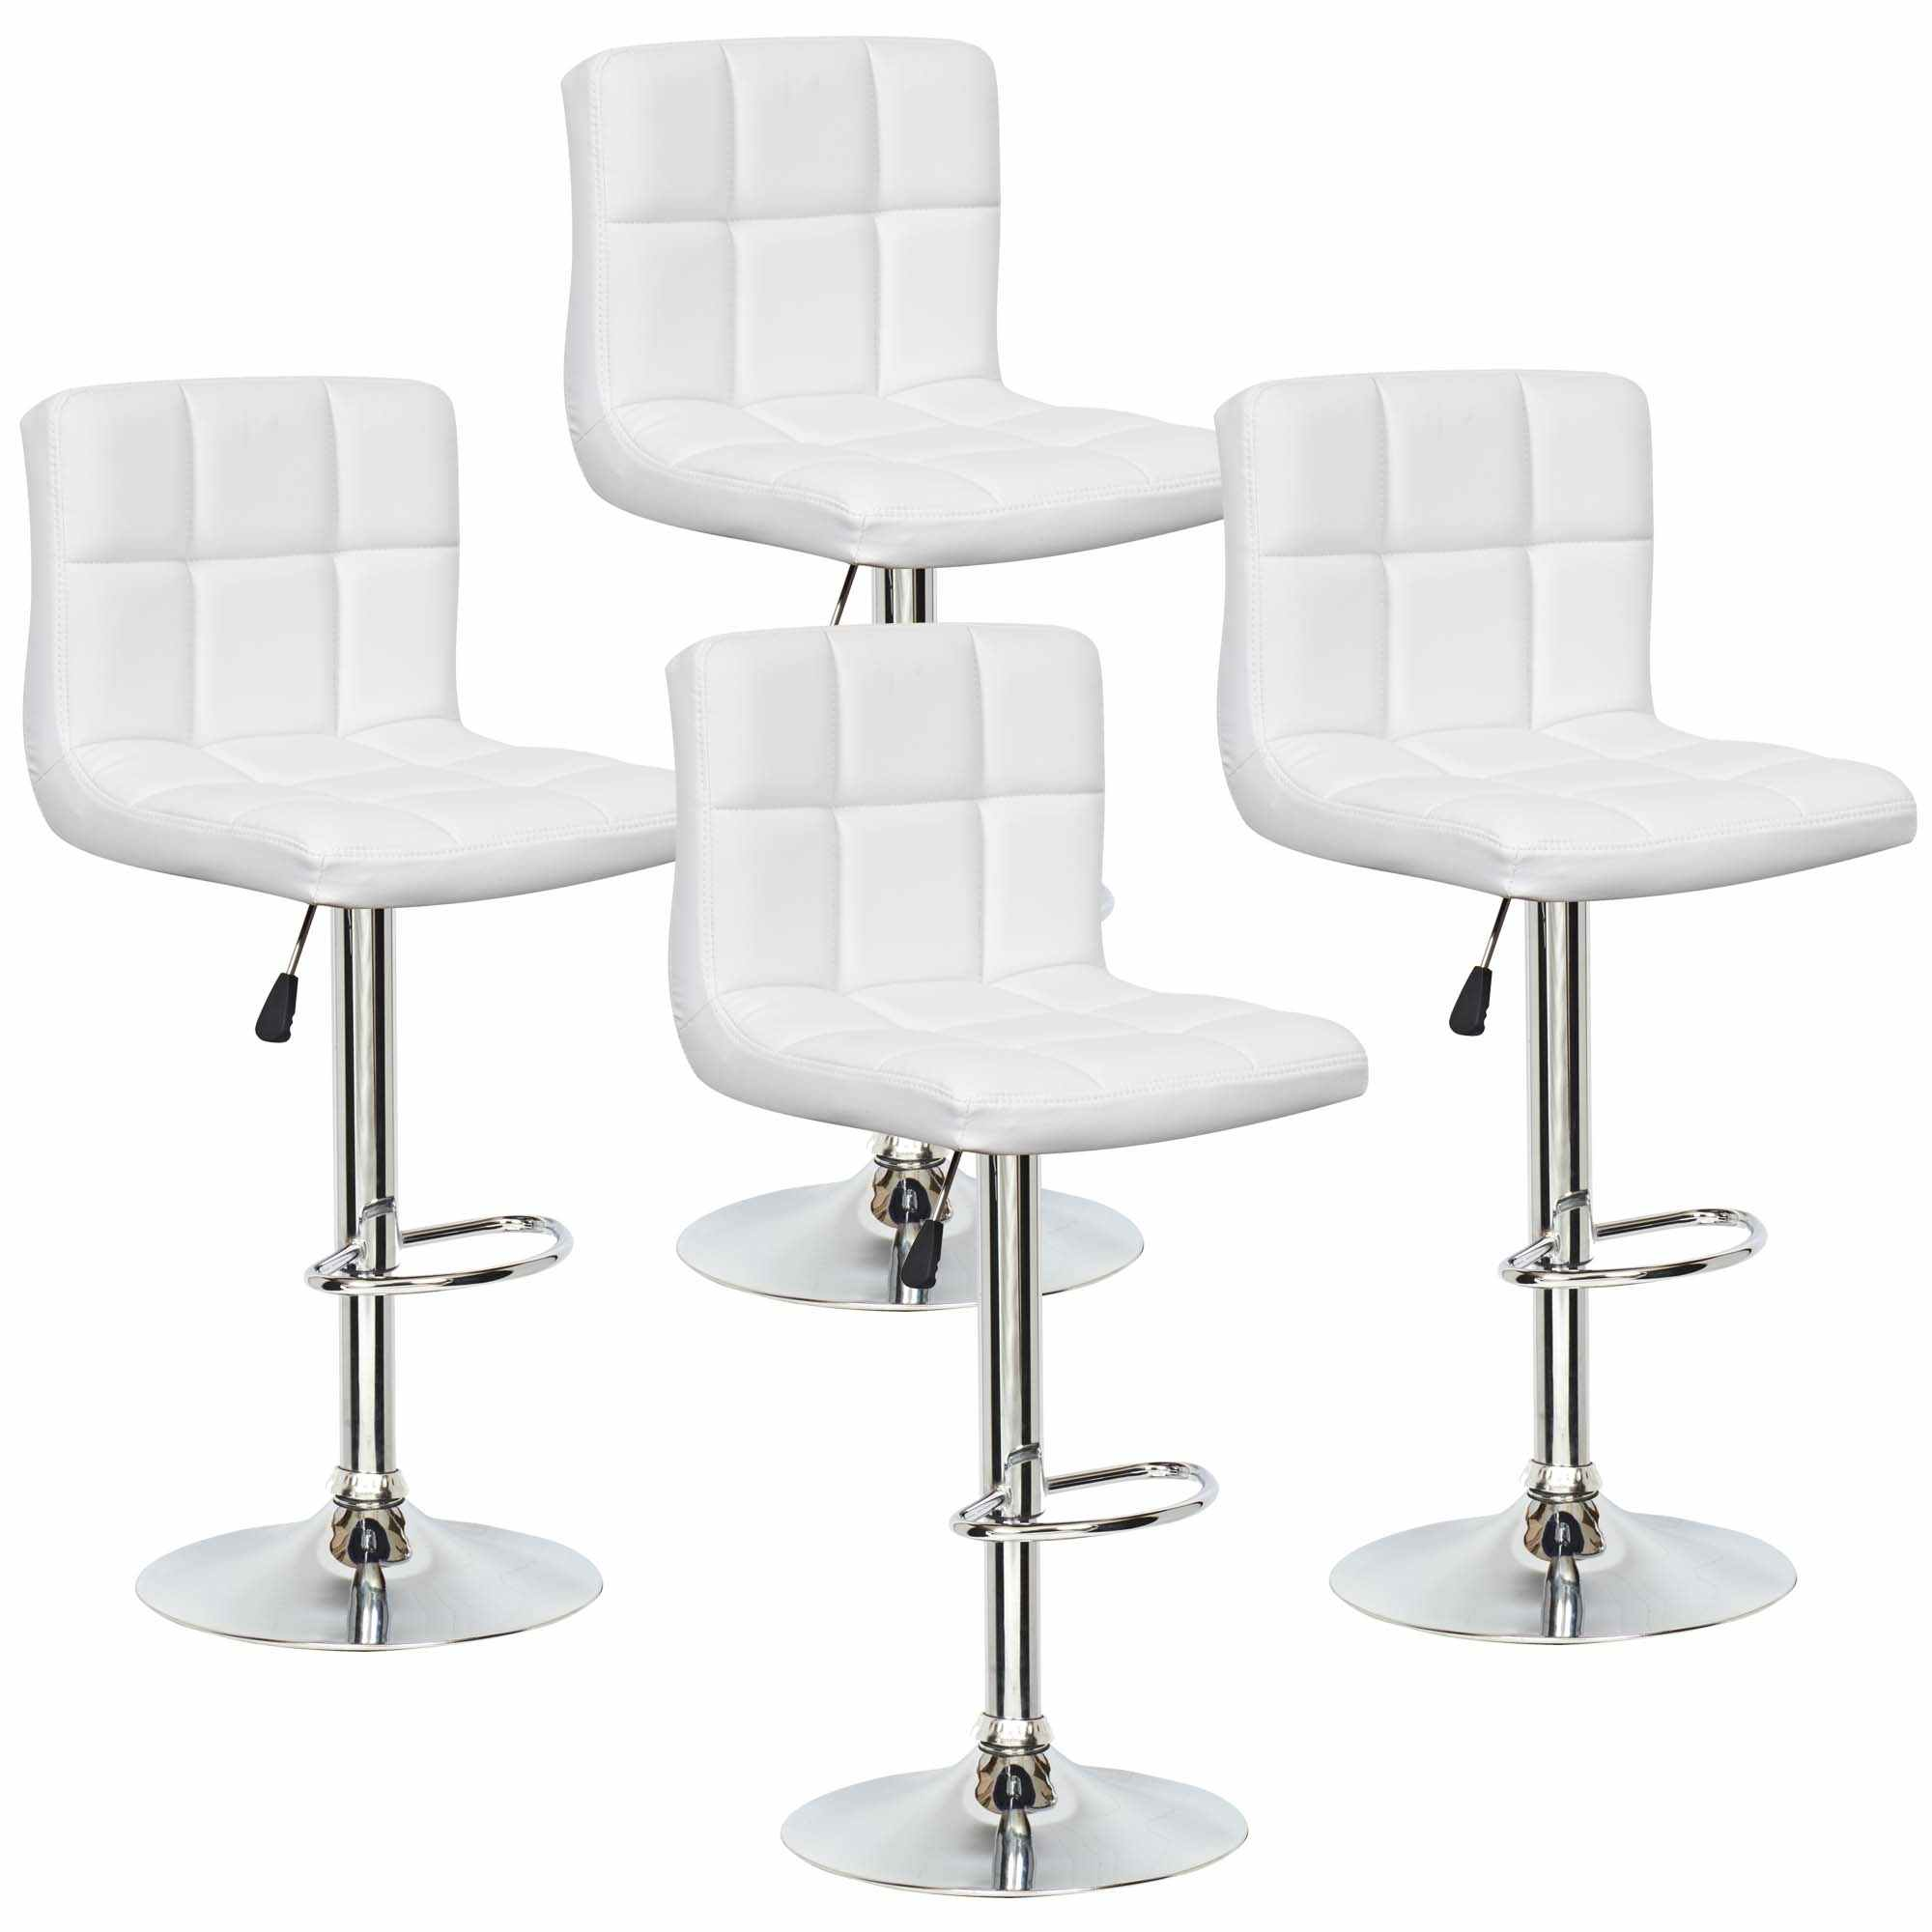 Tabourets Bar Deco In Paris Lot De 4 Tabourets De Bar Blanc Scalo Scalo Tab